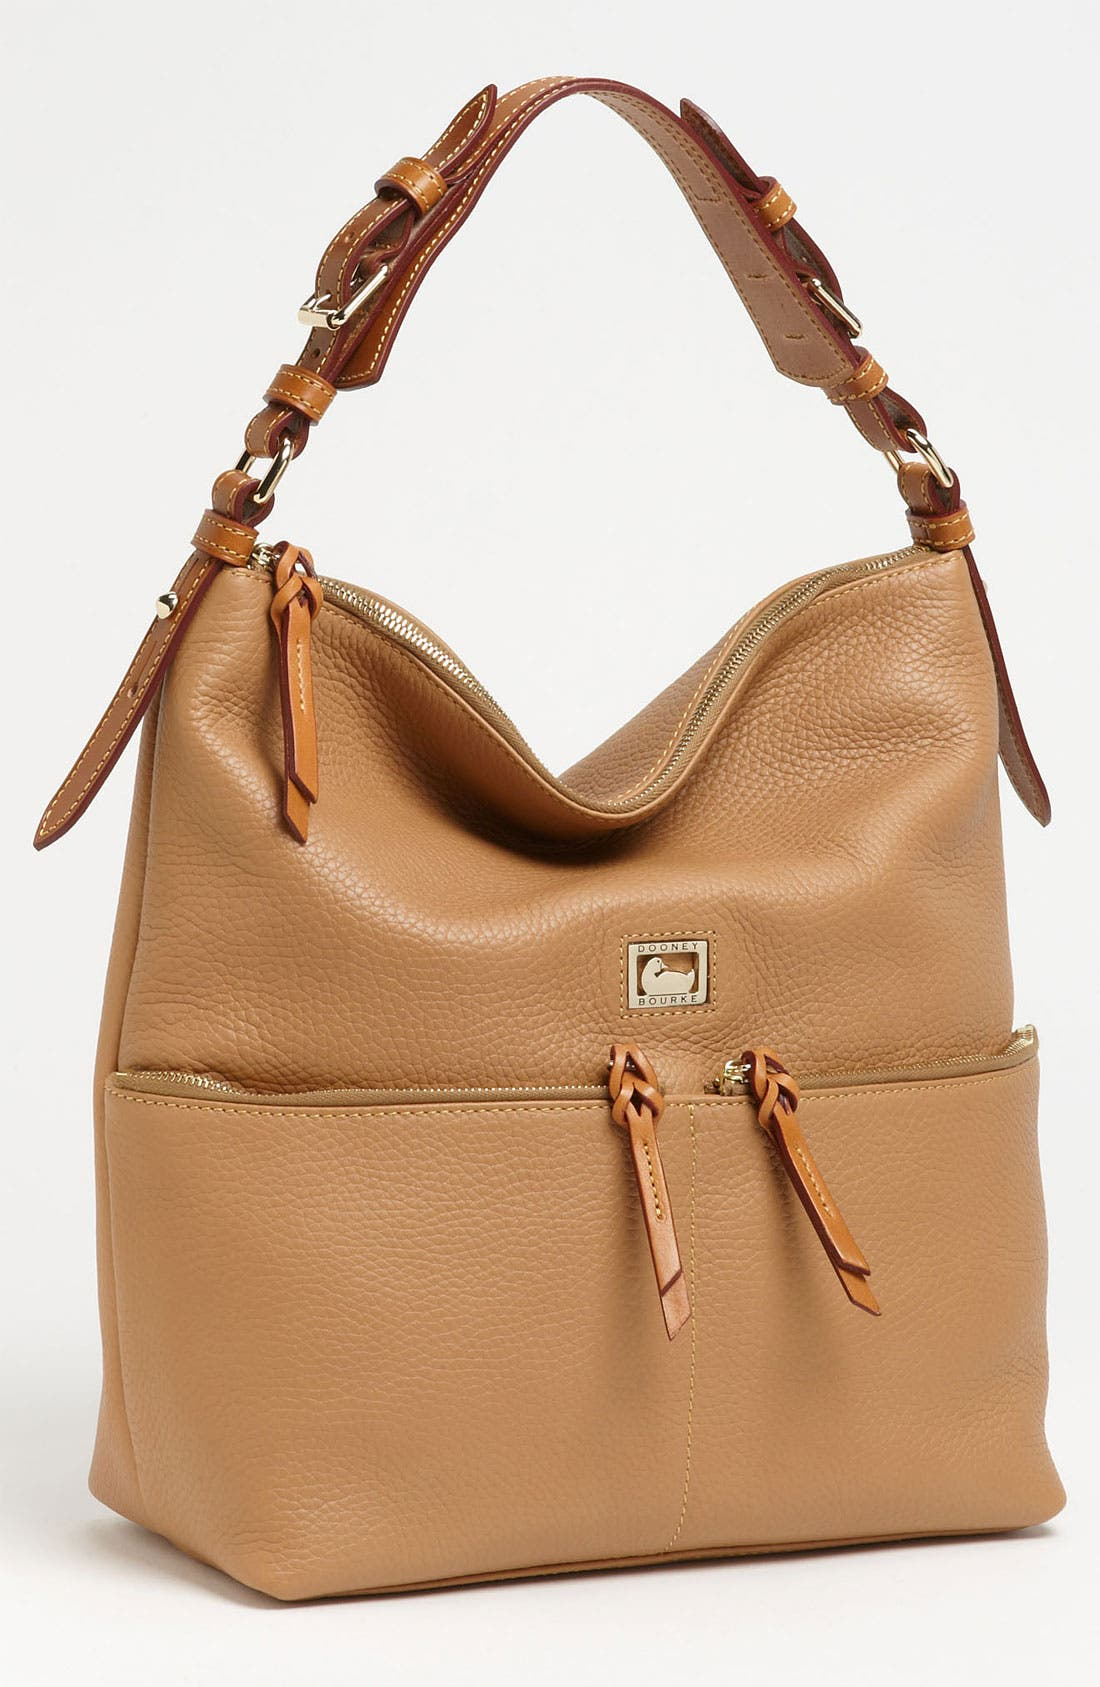 Alternate Image 1 Selected - Dooney & Bourke 'Dillen - Medium' Zip Pocket Leather Hobo